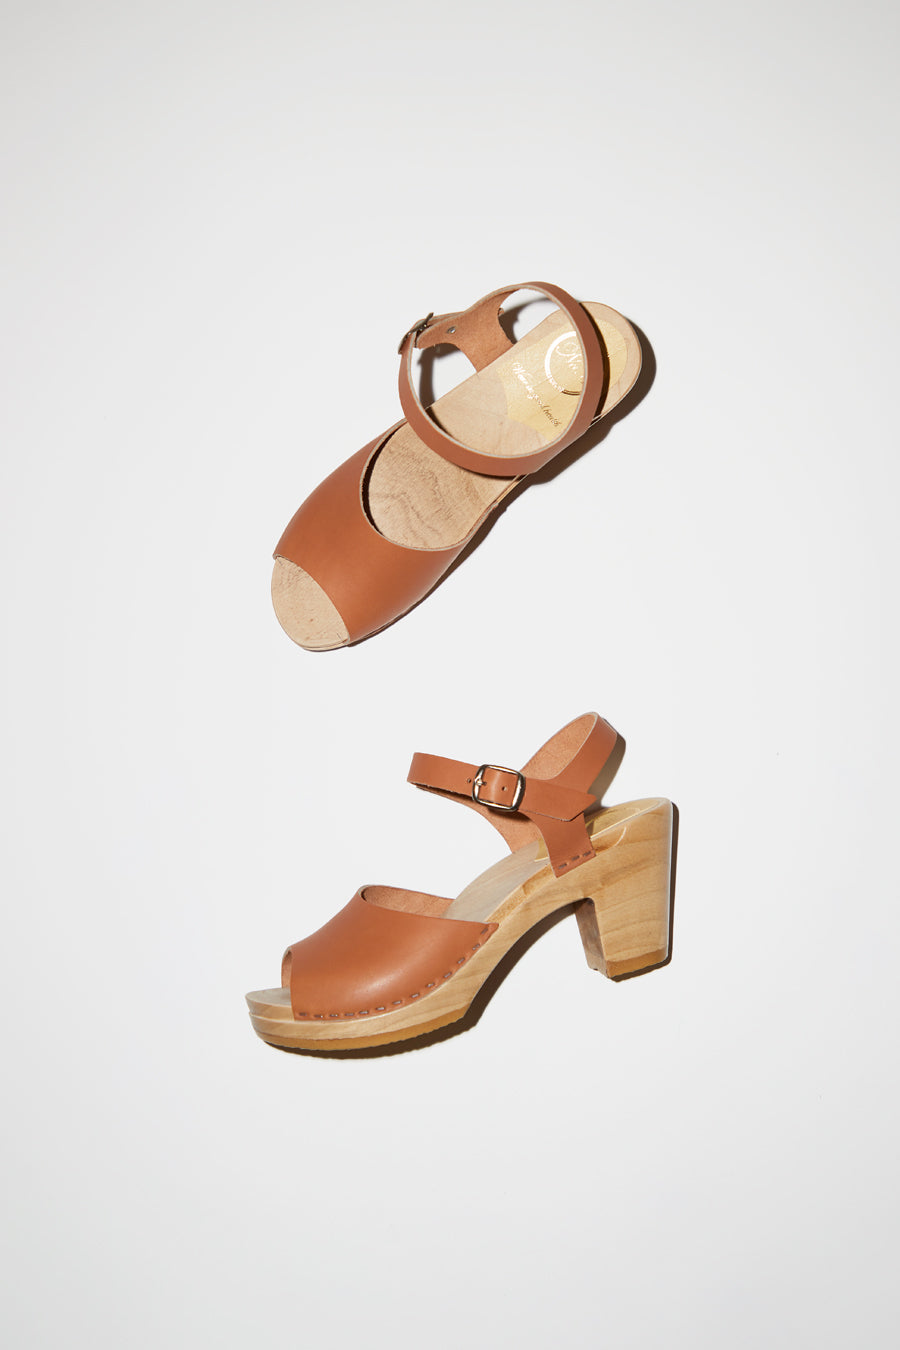 No.6 Erika Clog on High Heel in Caramel